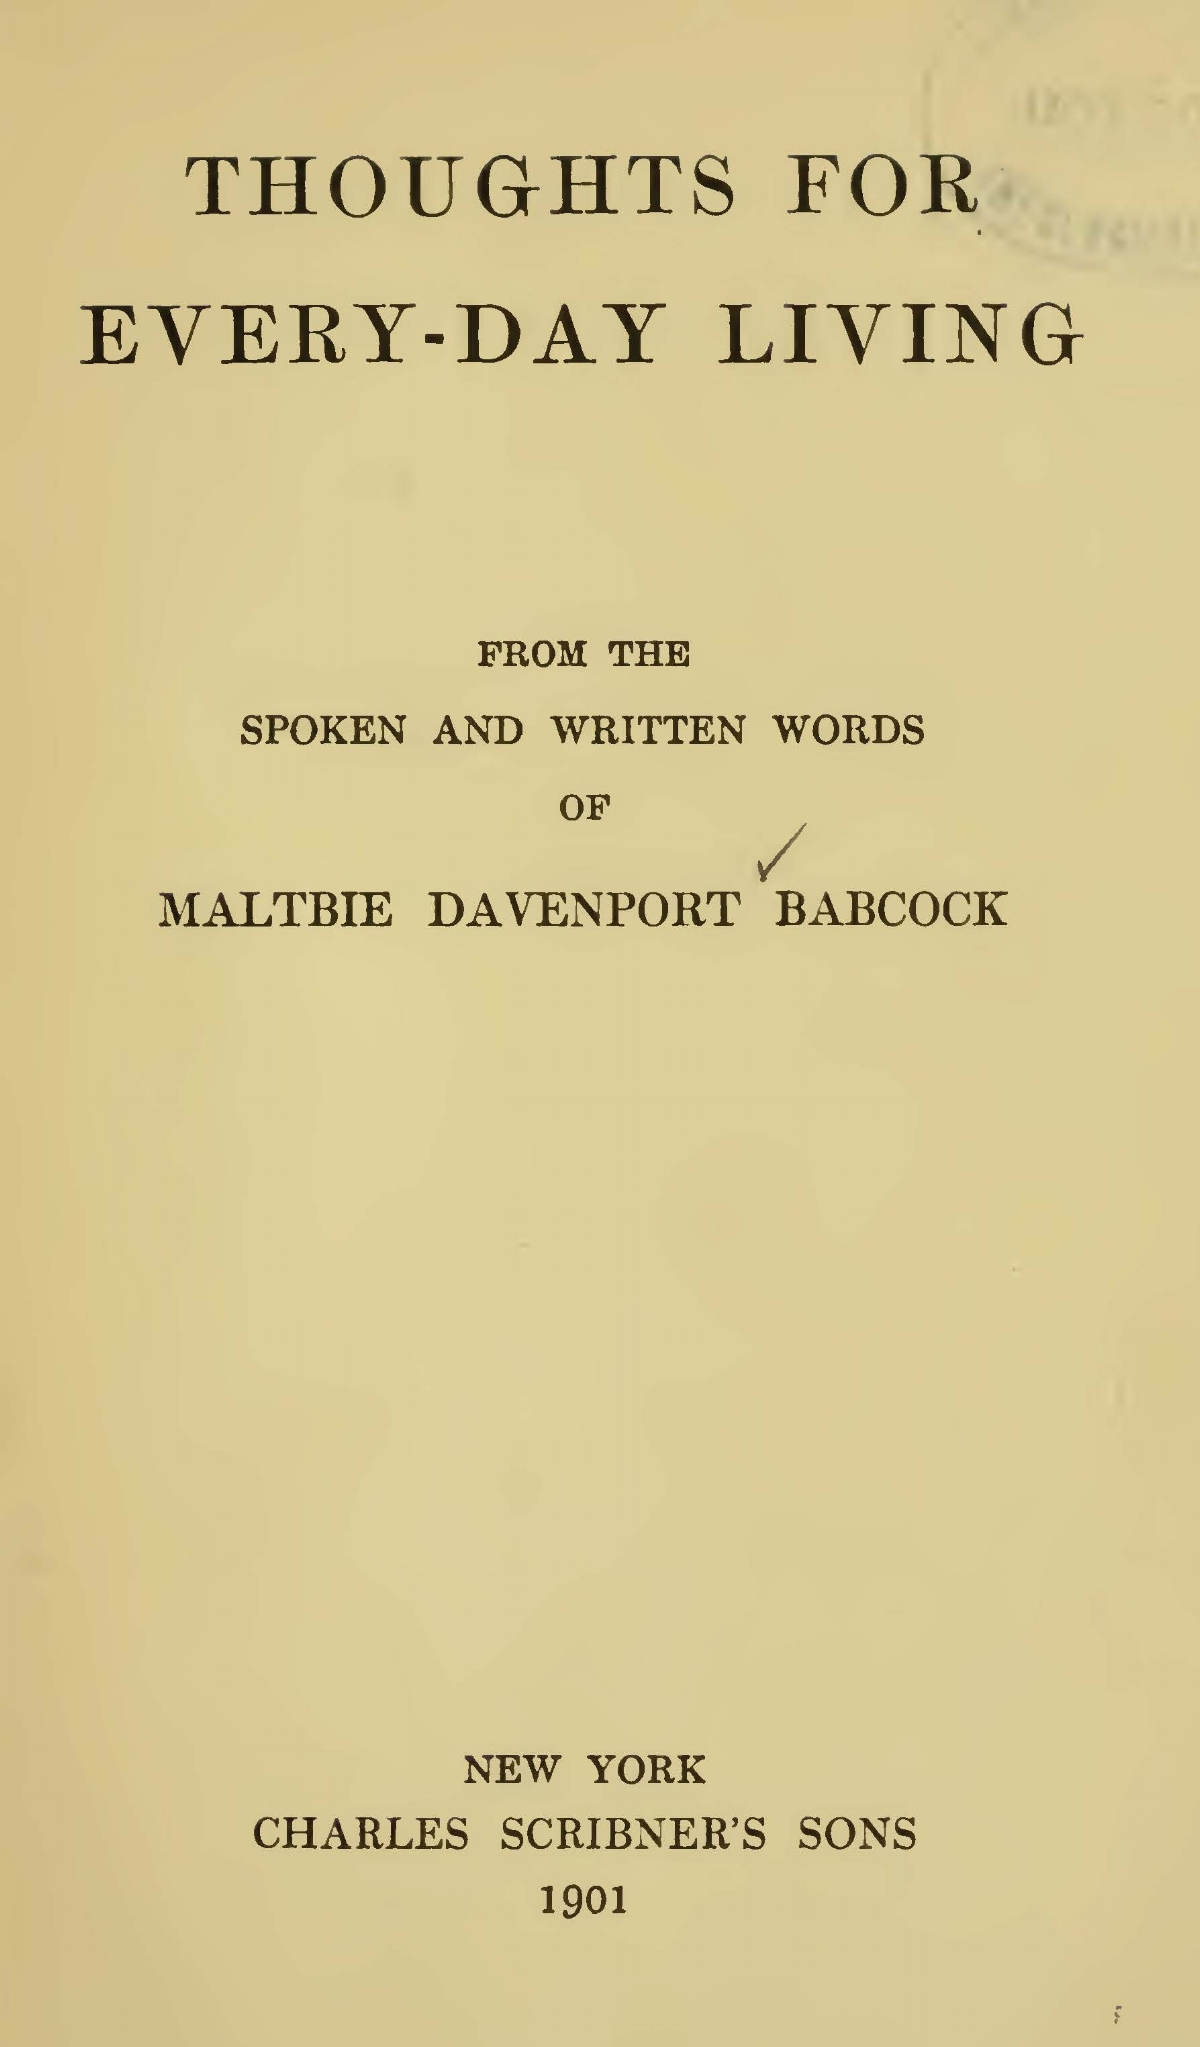 Babcock, Maltbie Davenport, Thoughts for Every-Day Living Title Page.jpg